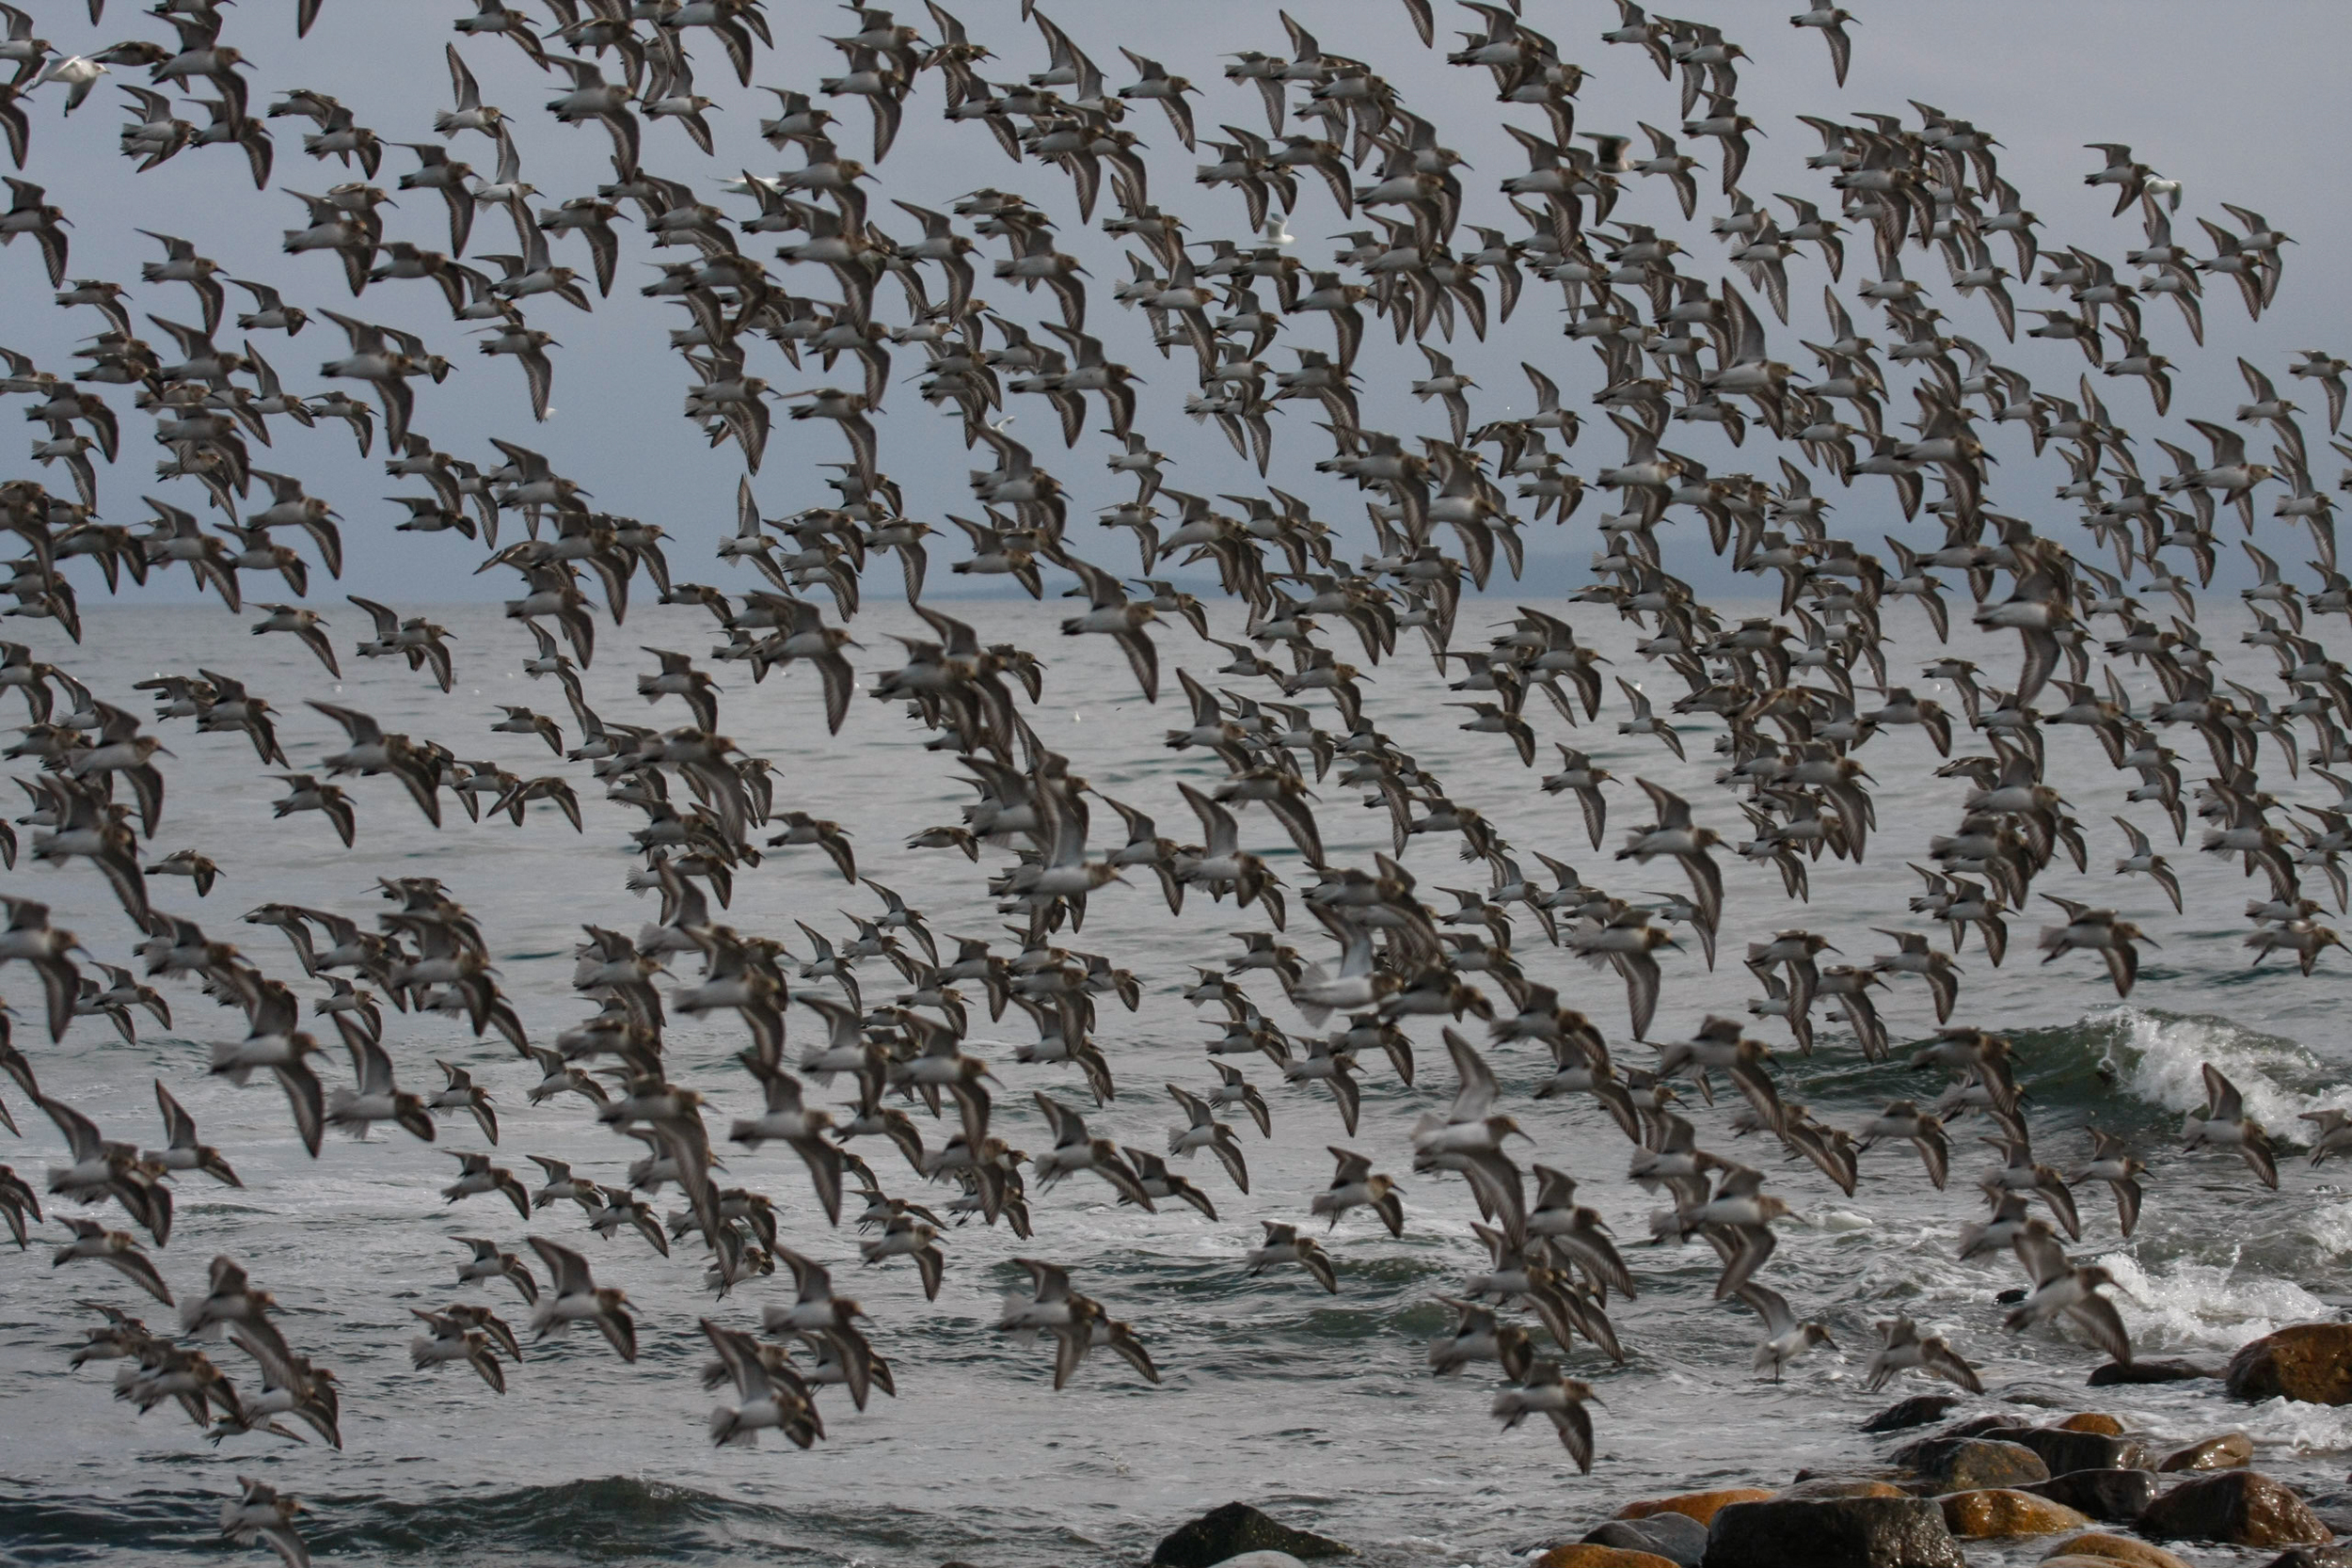 A big flock of shorebirds. Get used to it son....it's that time of year!